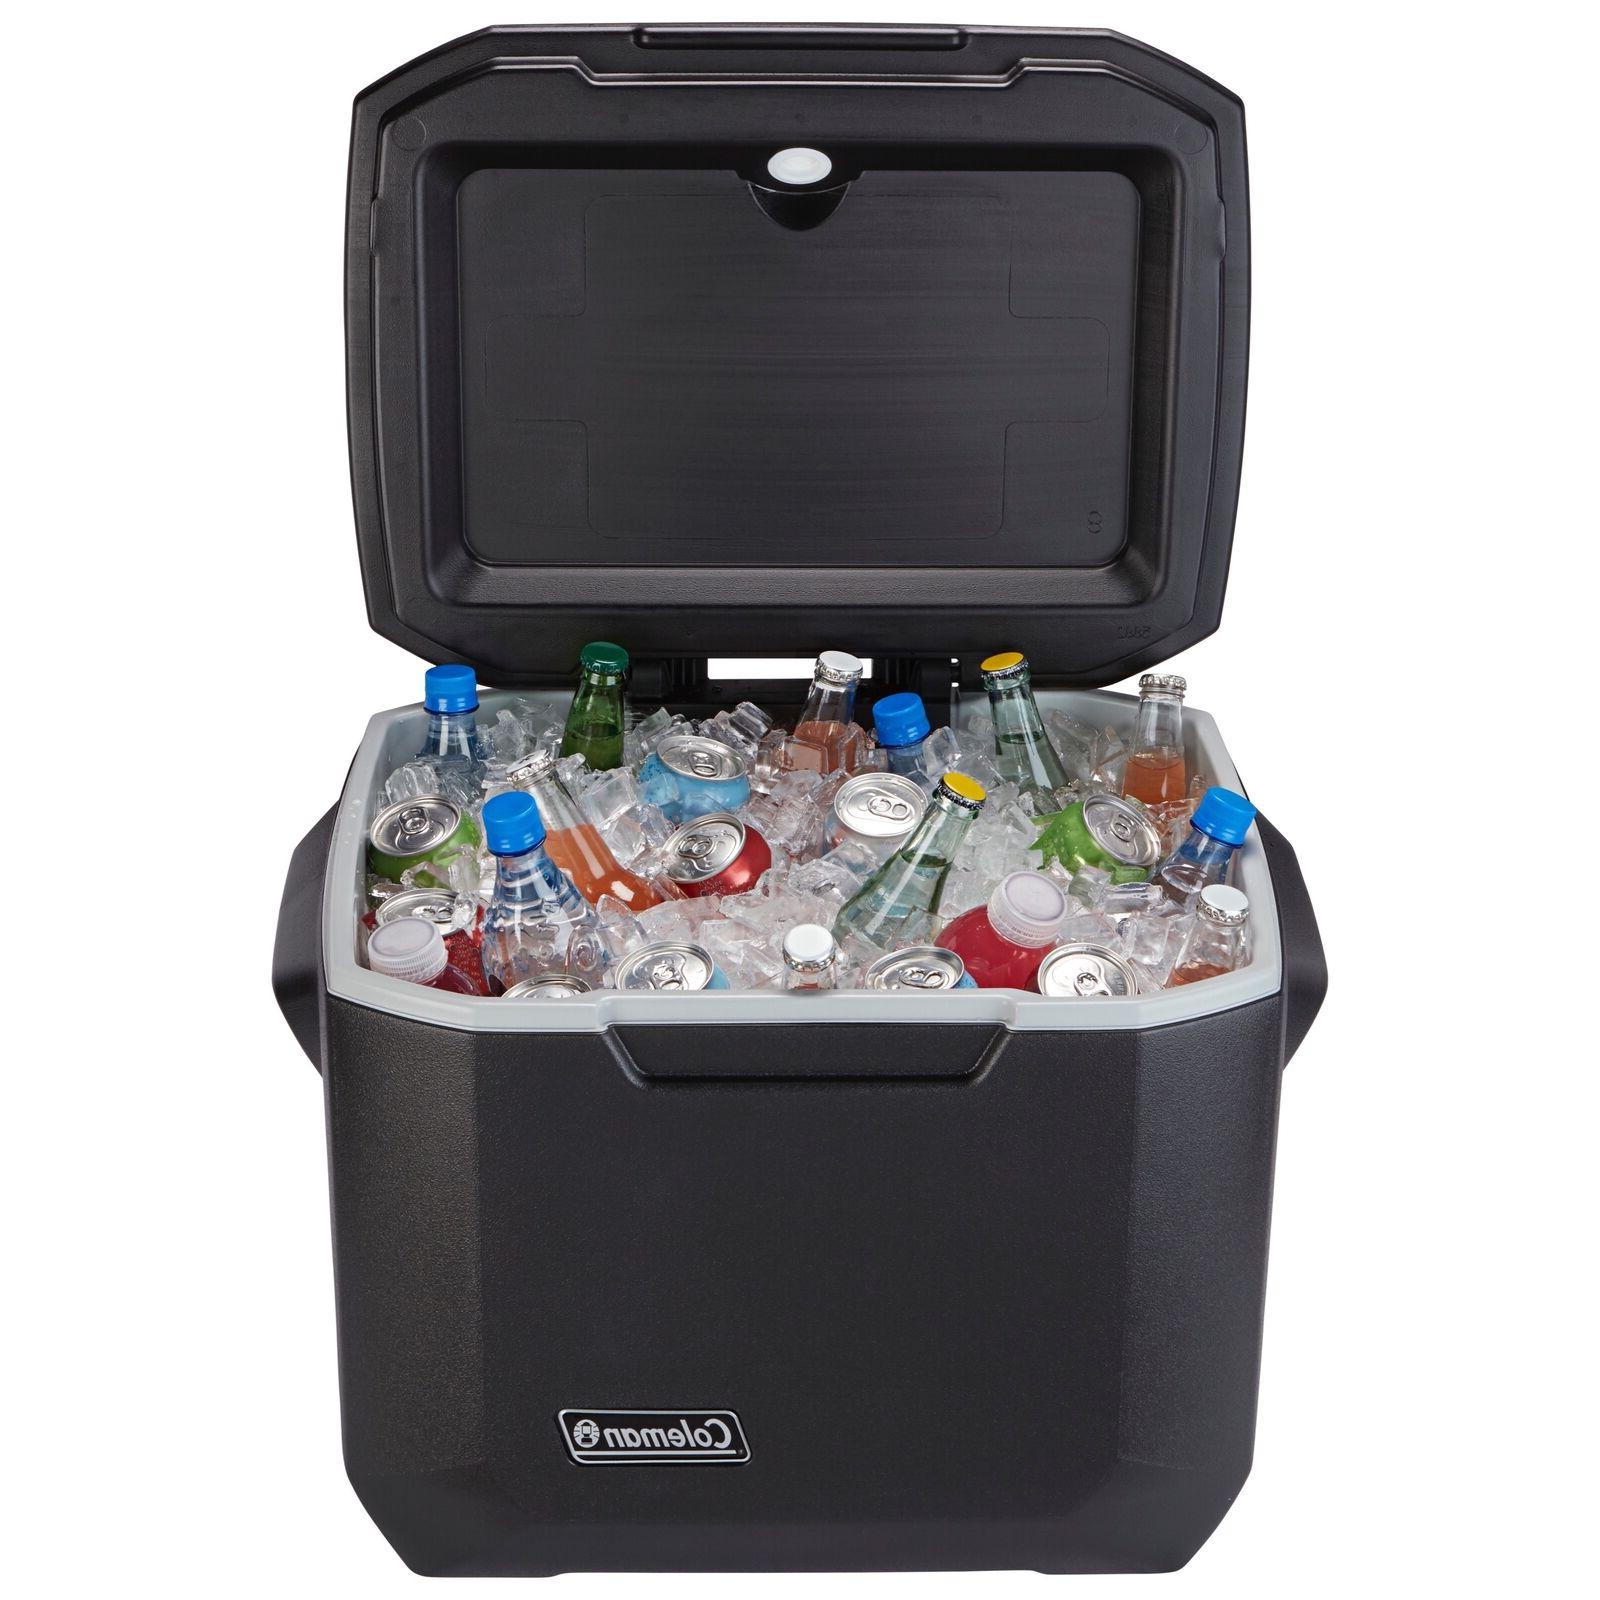 Black Extreme Cooler insulated easy